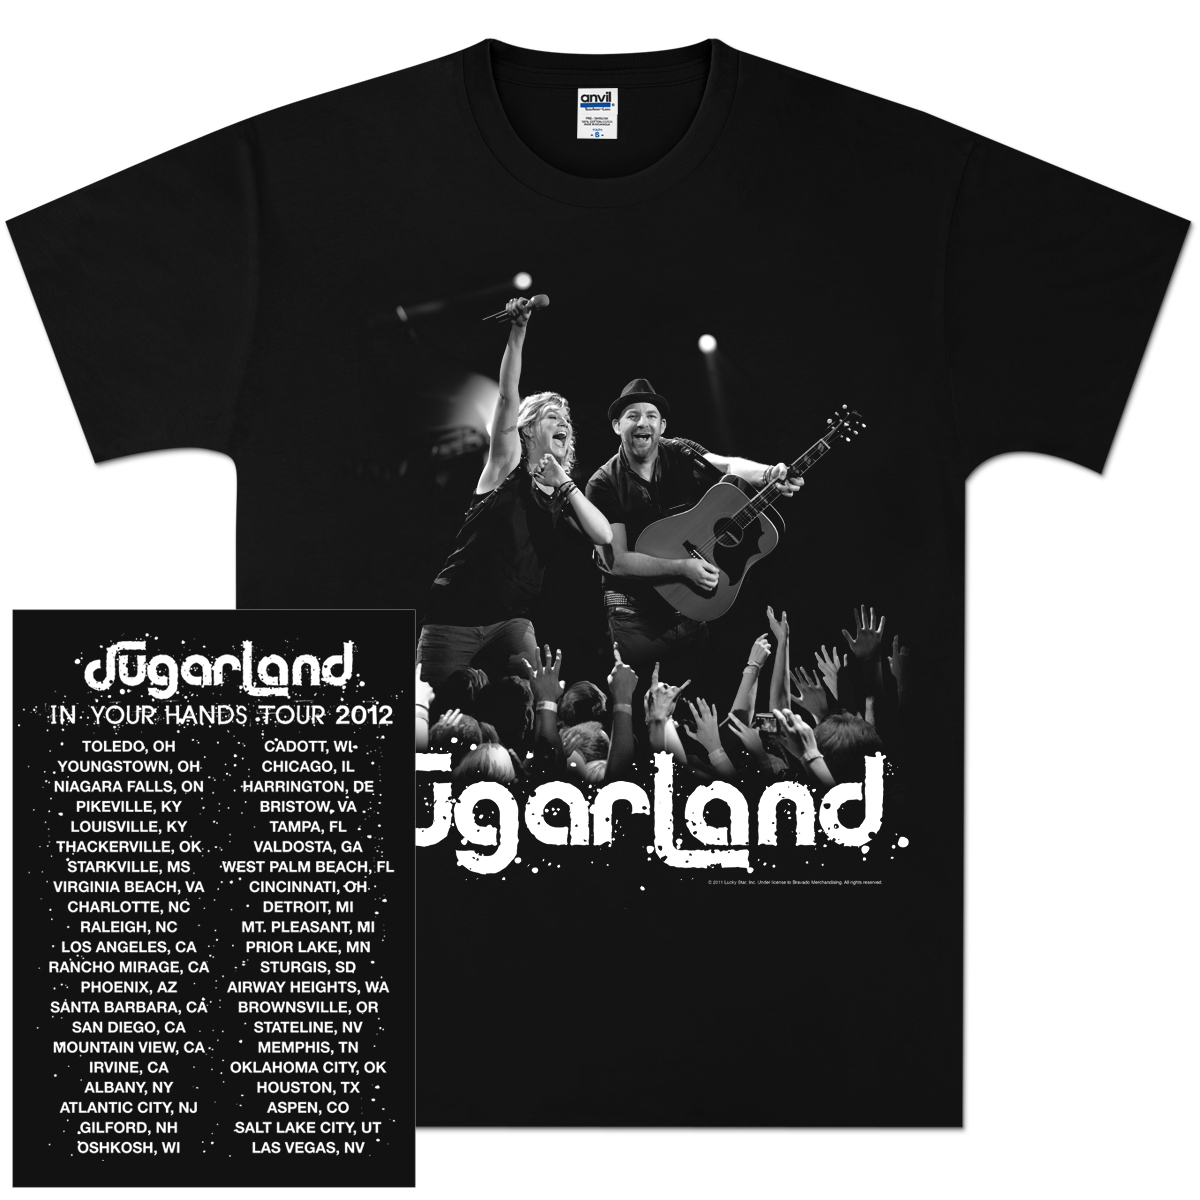 Sugarland Live Action Tour T-Shirt